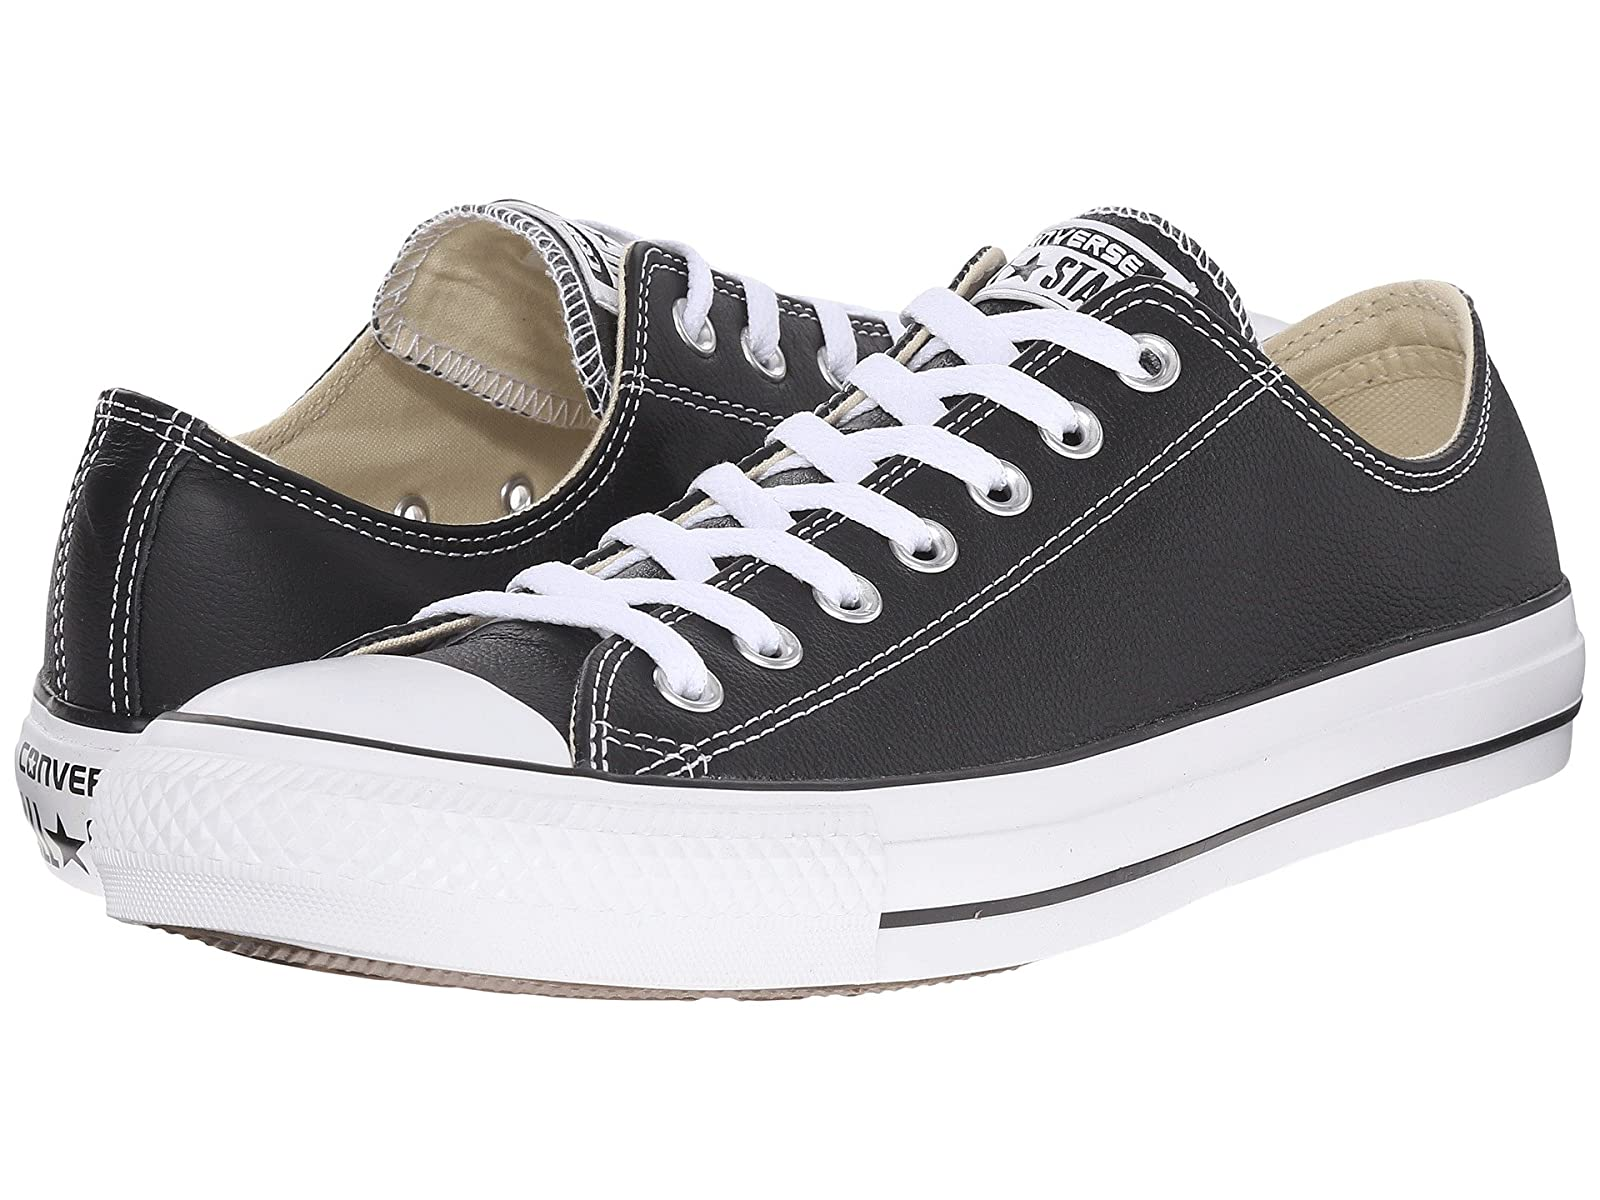 Converse Chuck Taylor® All Star® Leather OxAtmospheric grades have affordable shoes